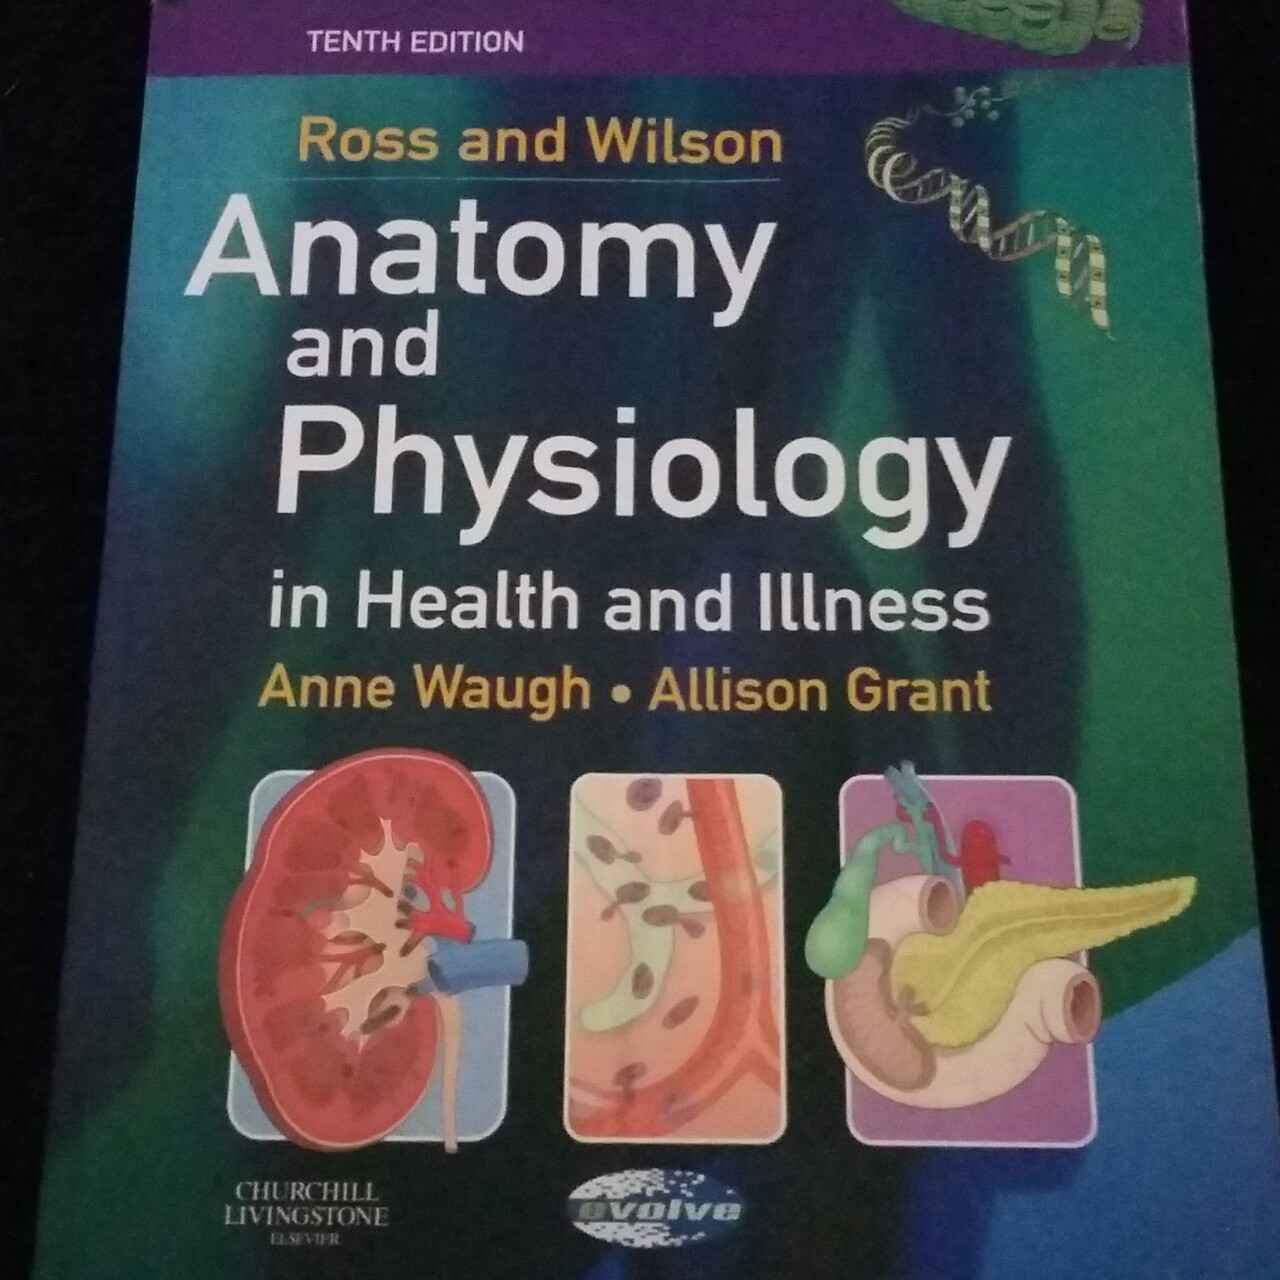 Anatomy and physiology textbook Brand new Never used - Depop